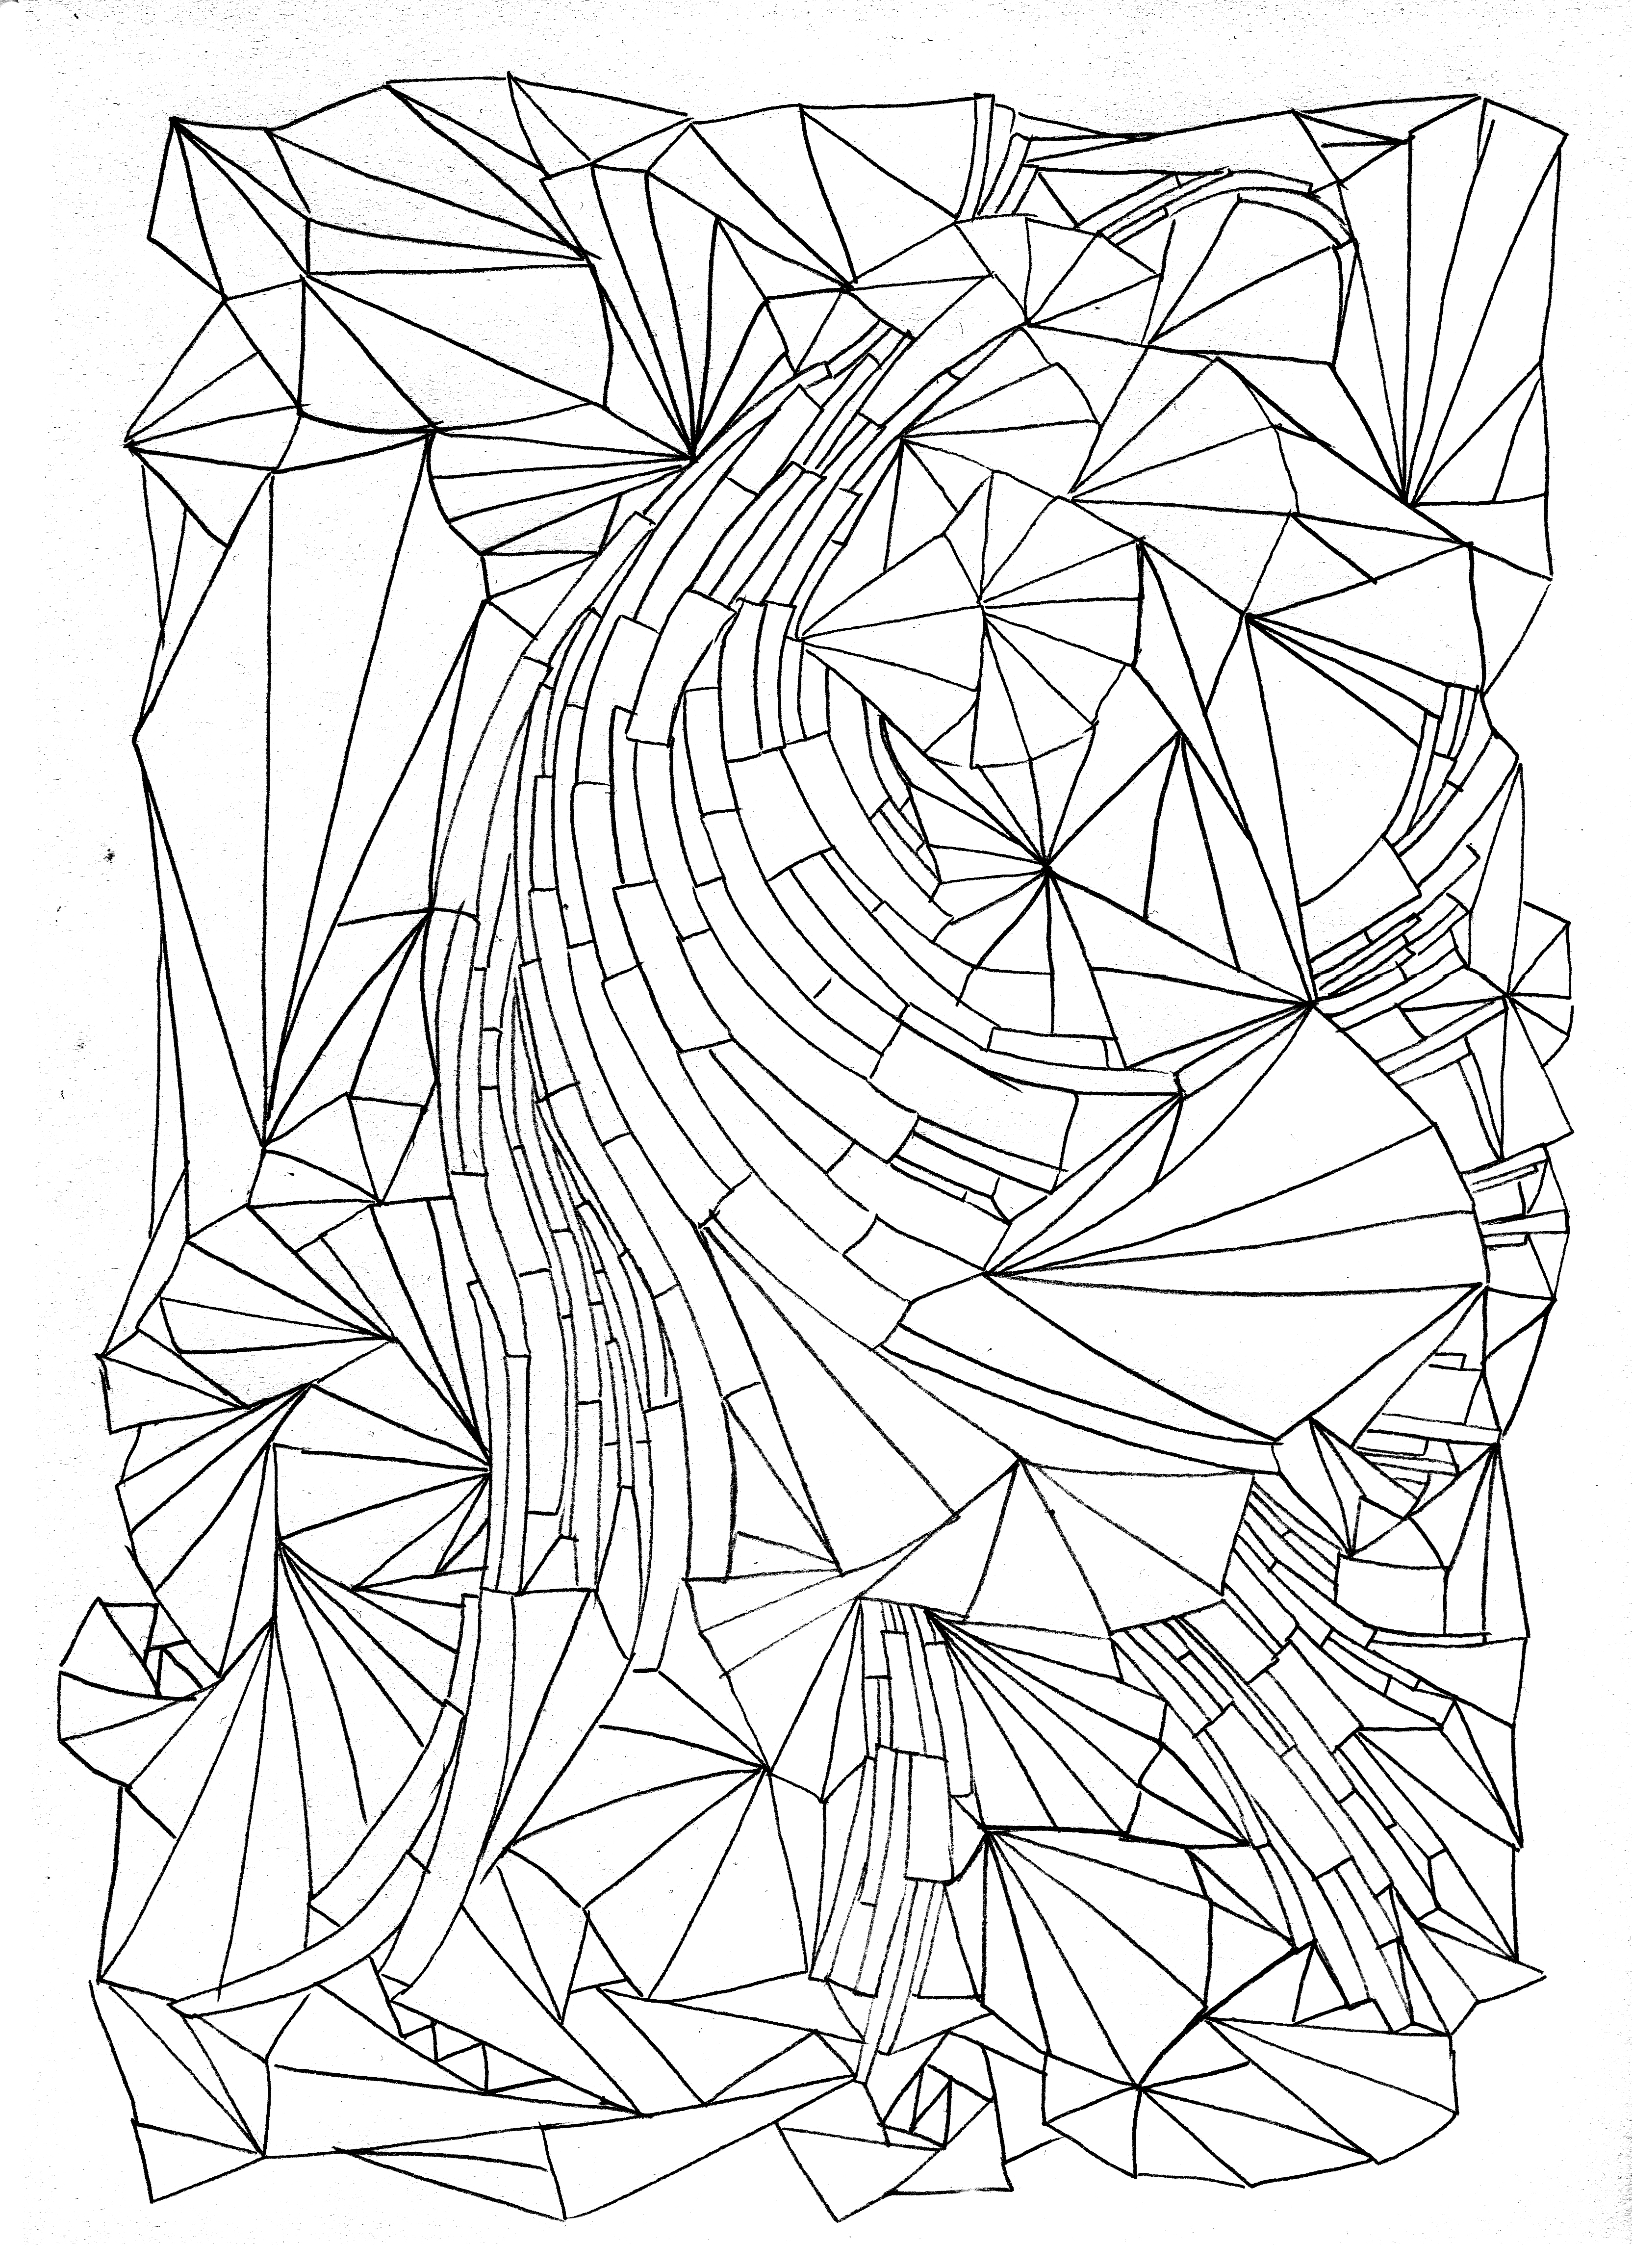 coloring designs free printable geometric coloring pages for kids designs coloring